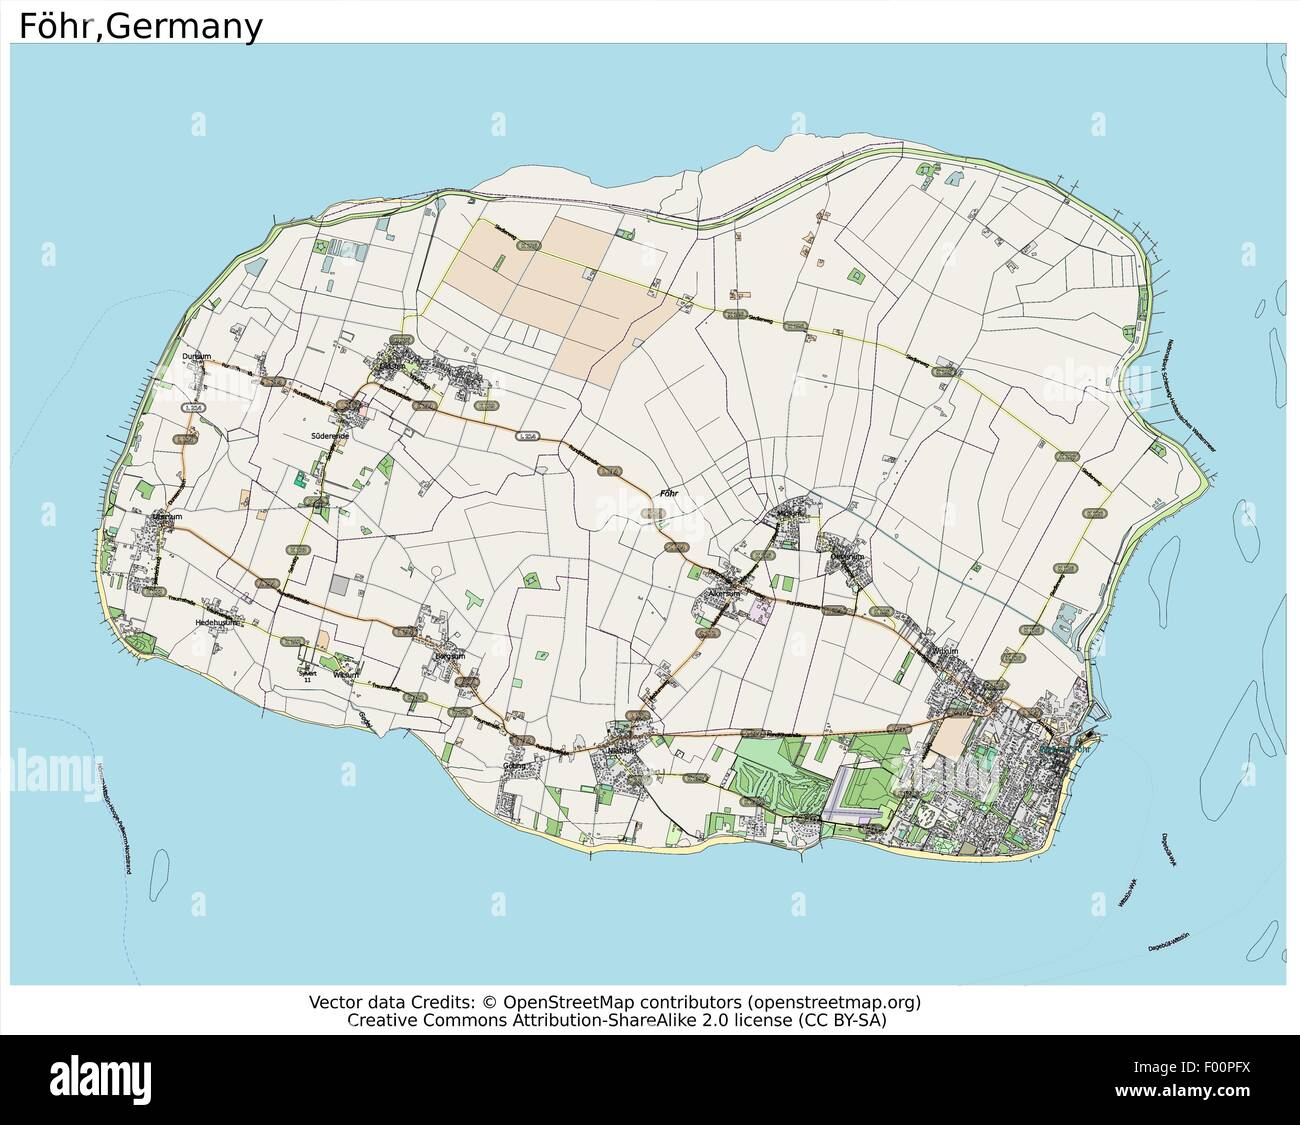 fohr island germany country city island state location map